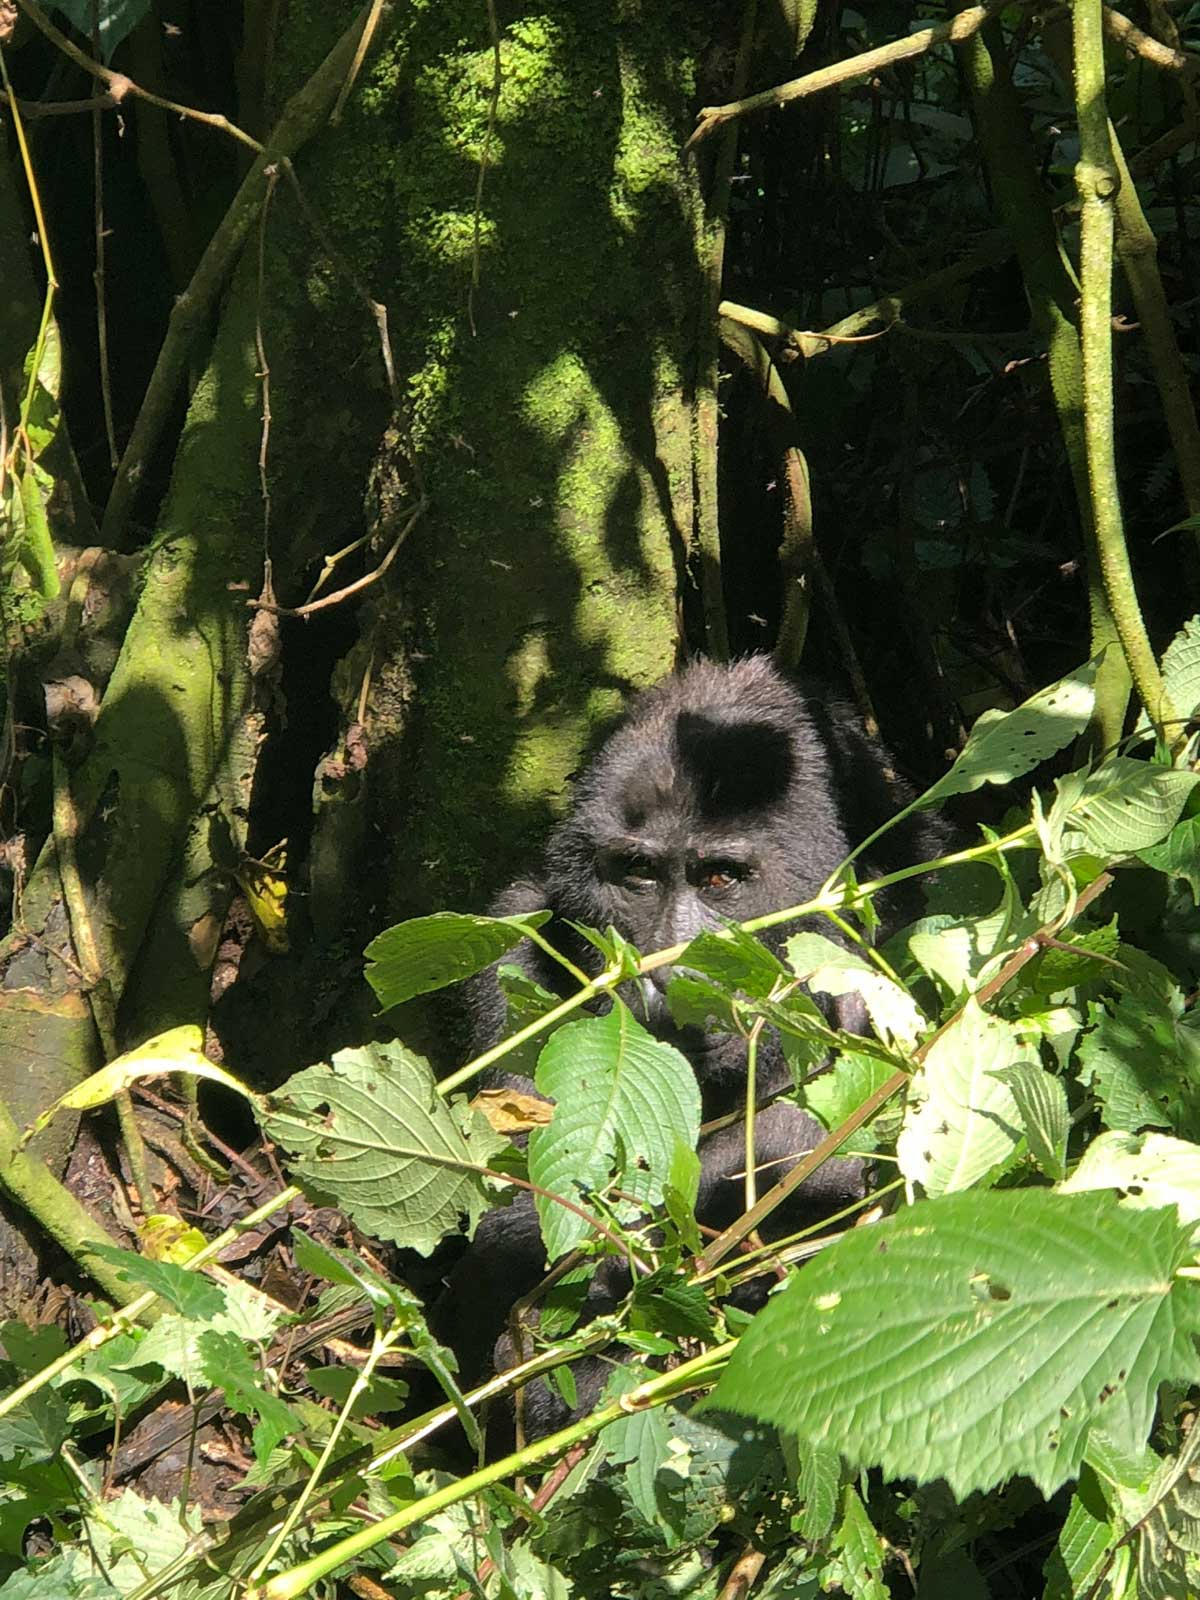 Gorilla trekking in Uganda, Gorilla trekking in Uganda, the Pearl of Africa